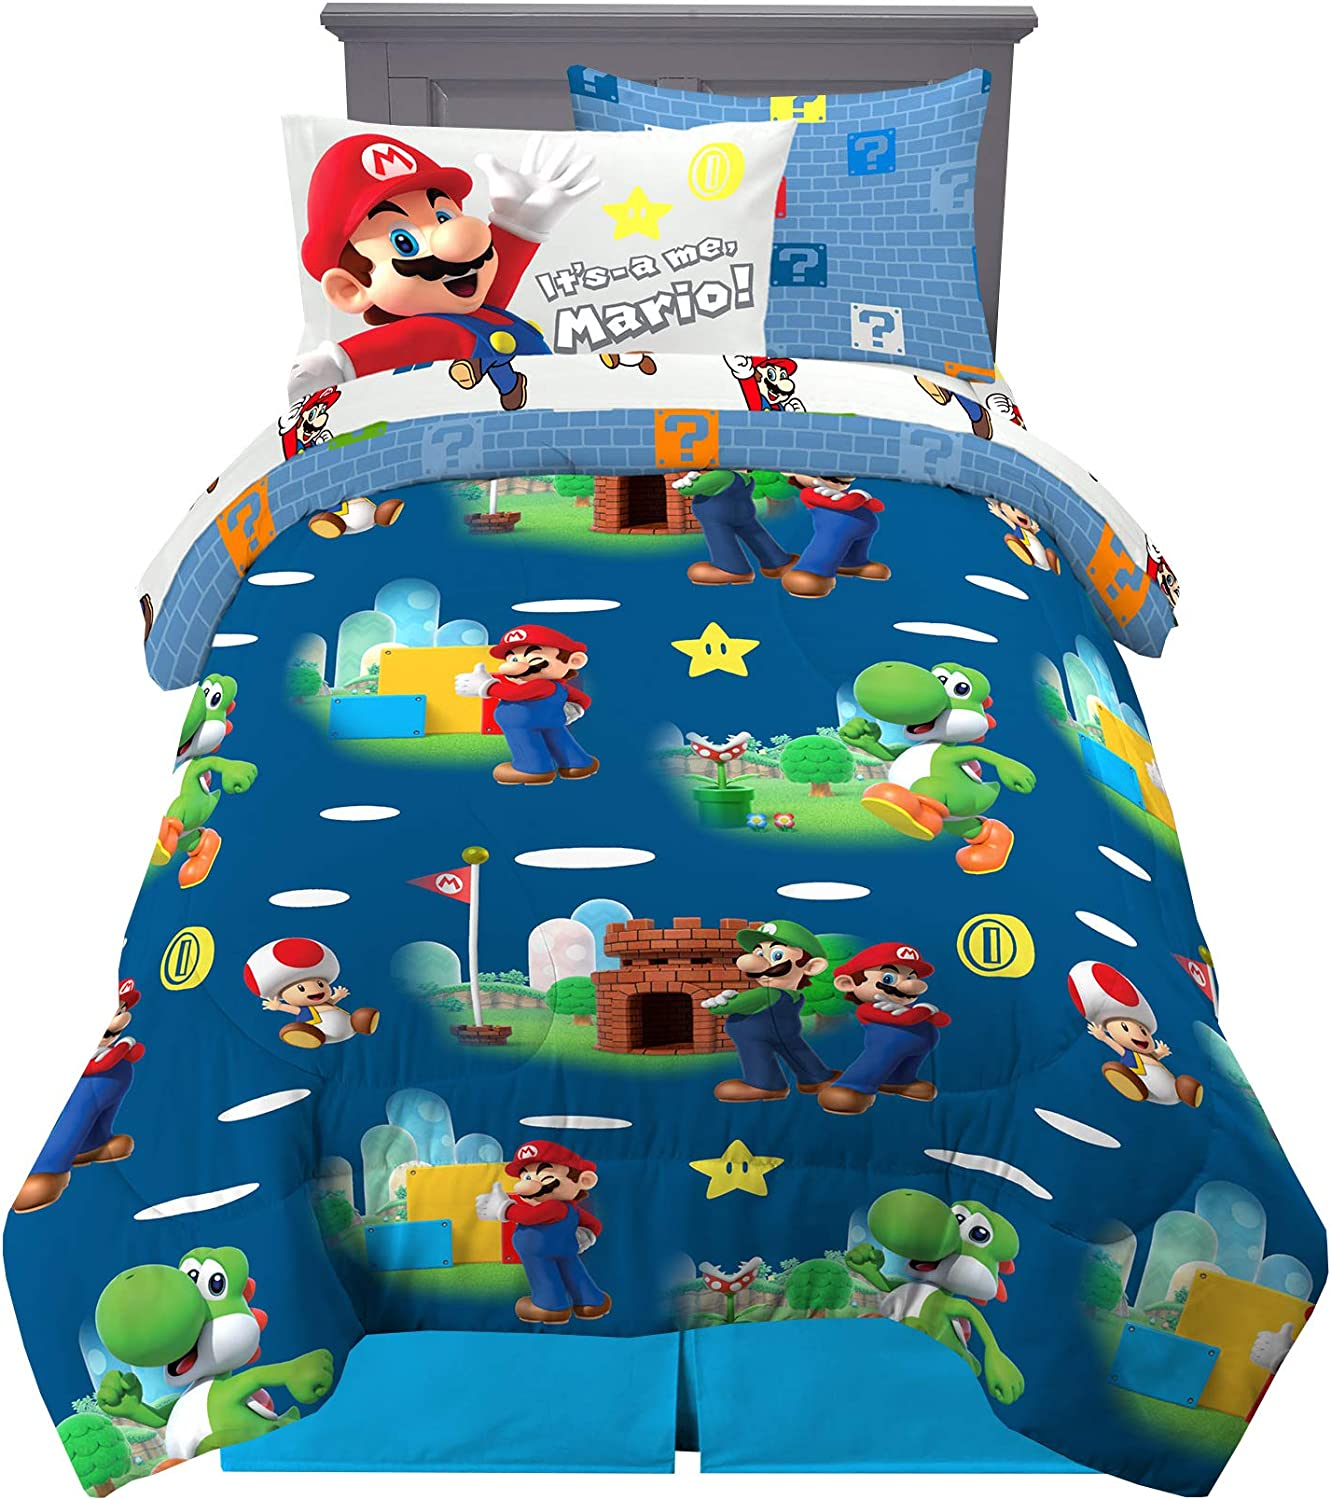 Franco Kids Bedding Super Soft Comforter and Sheet Set with Sham, 5 Piece Twin Size, Mario